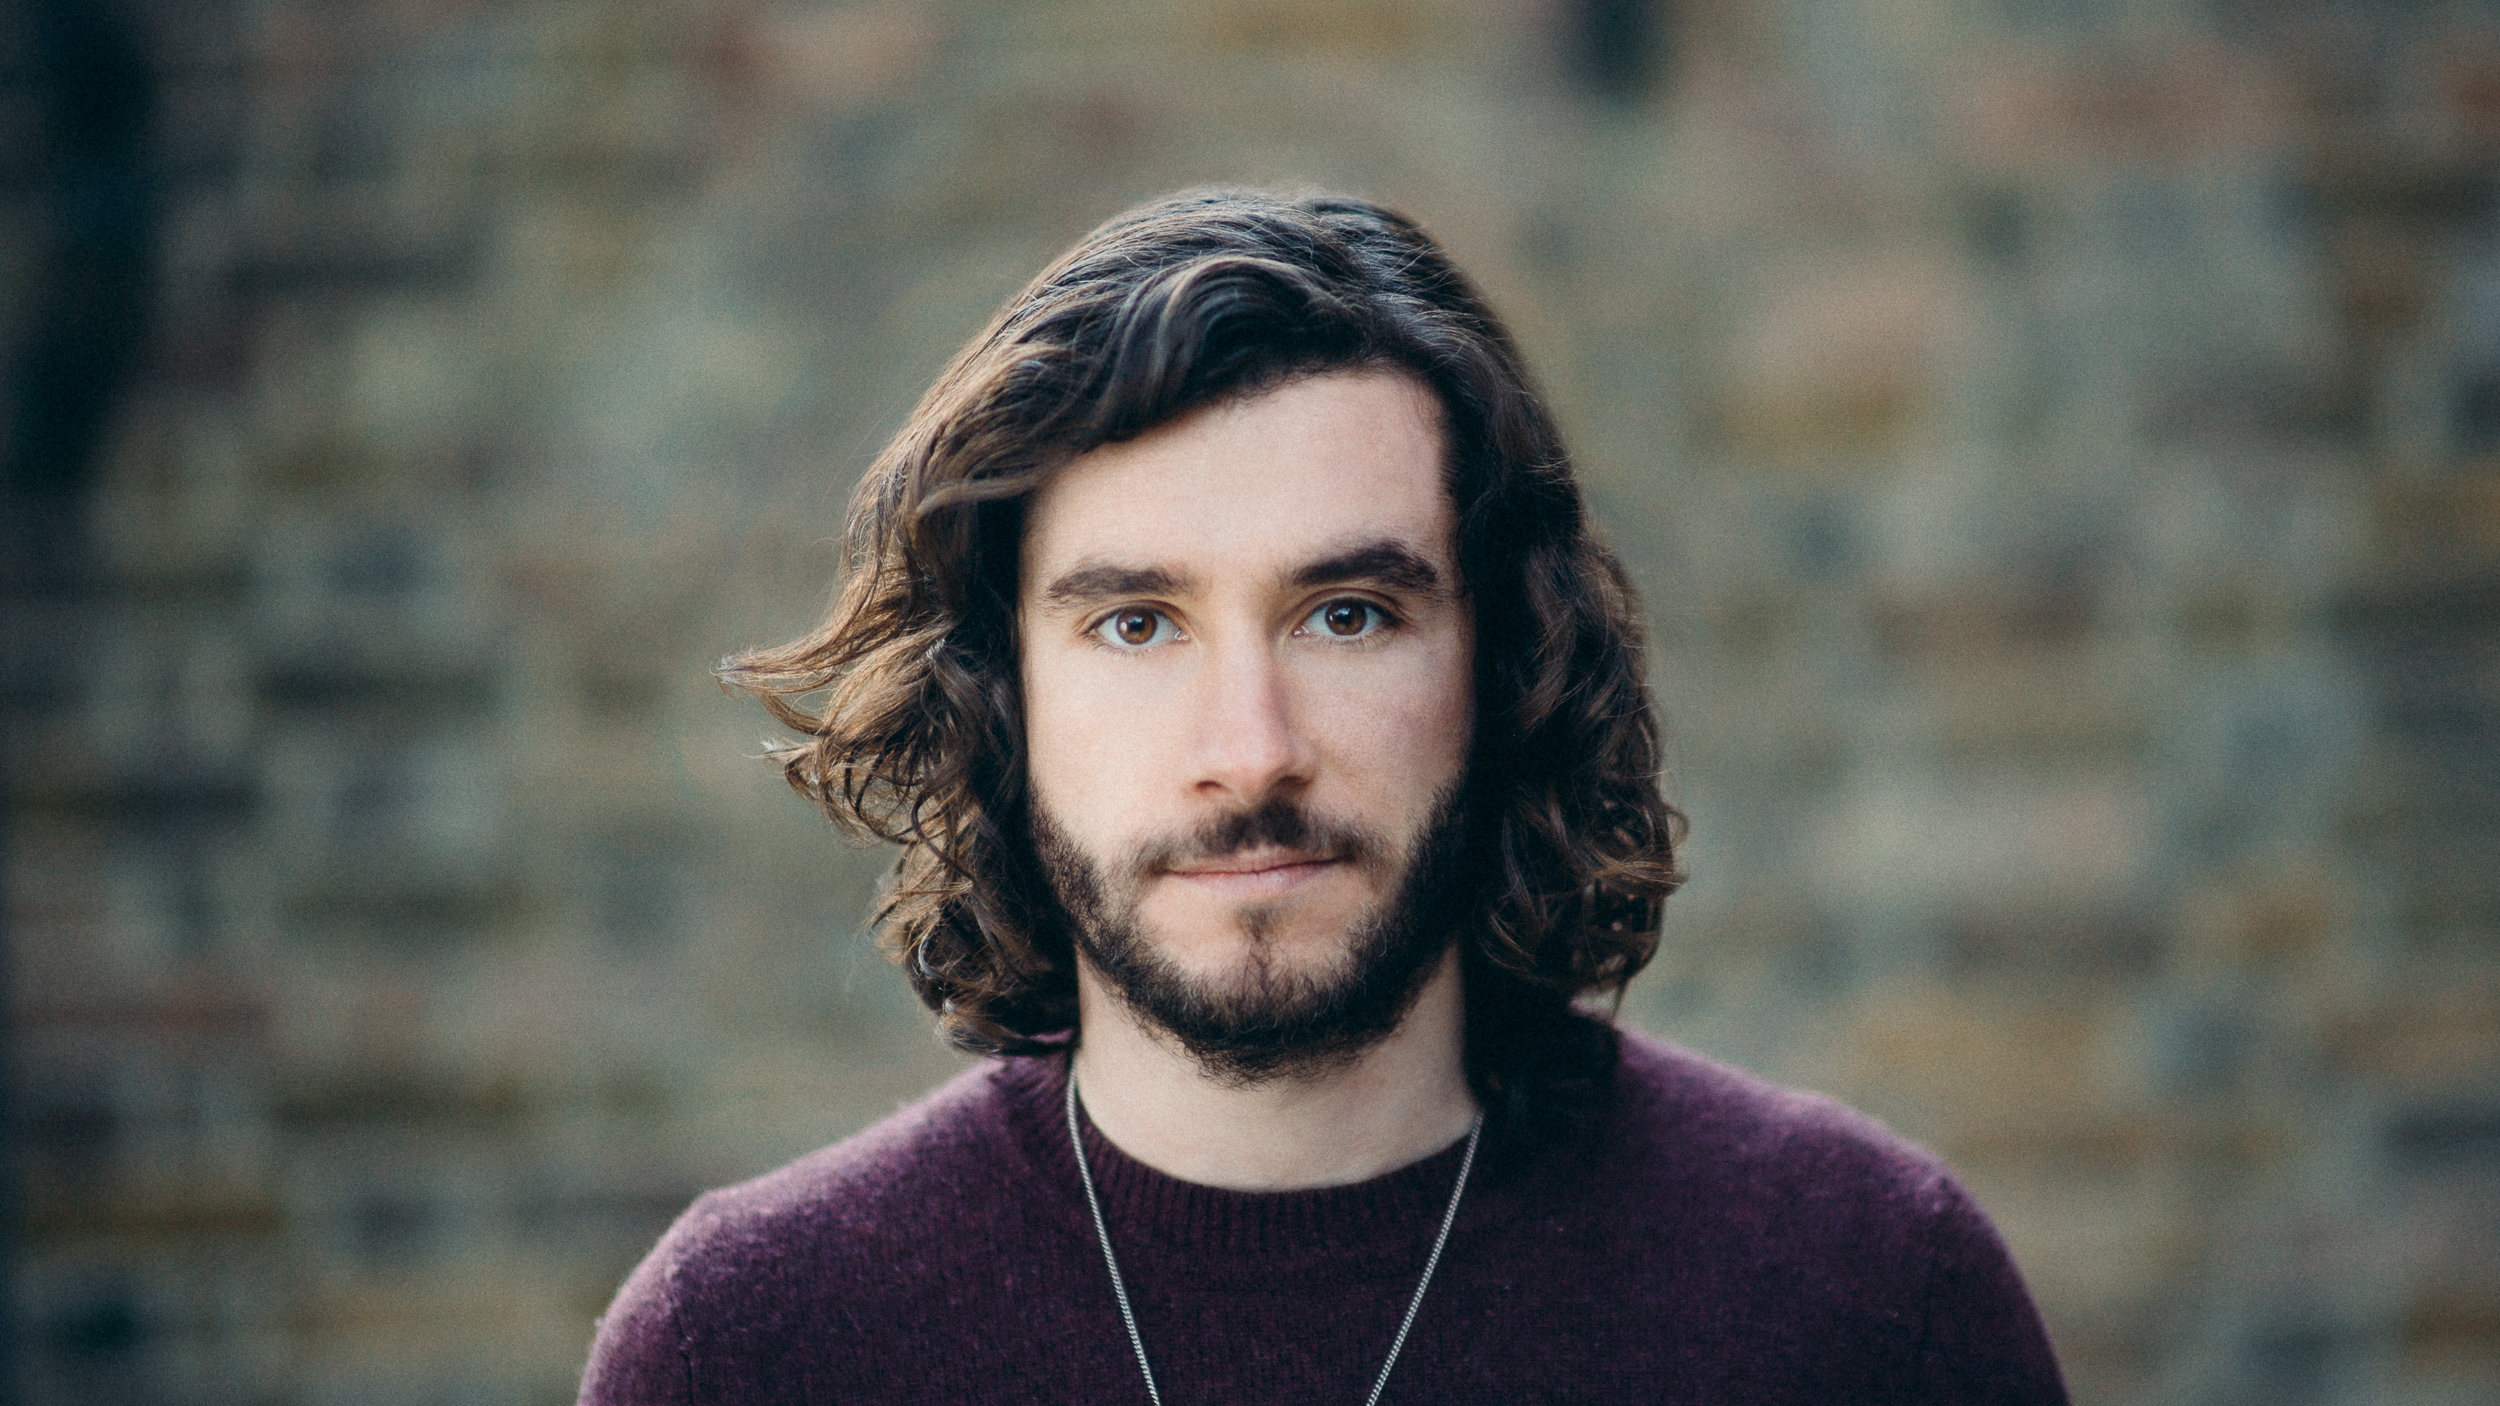 Conor Deedigan